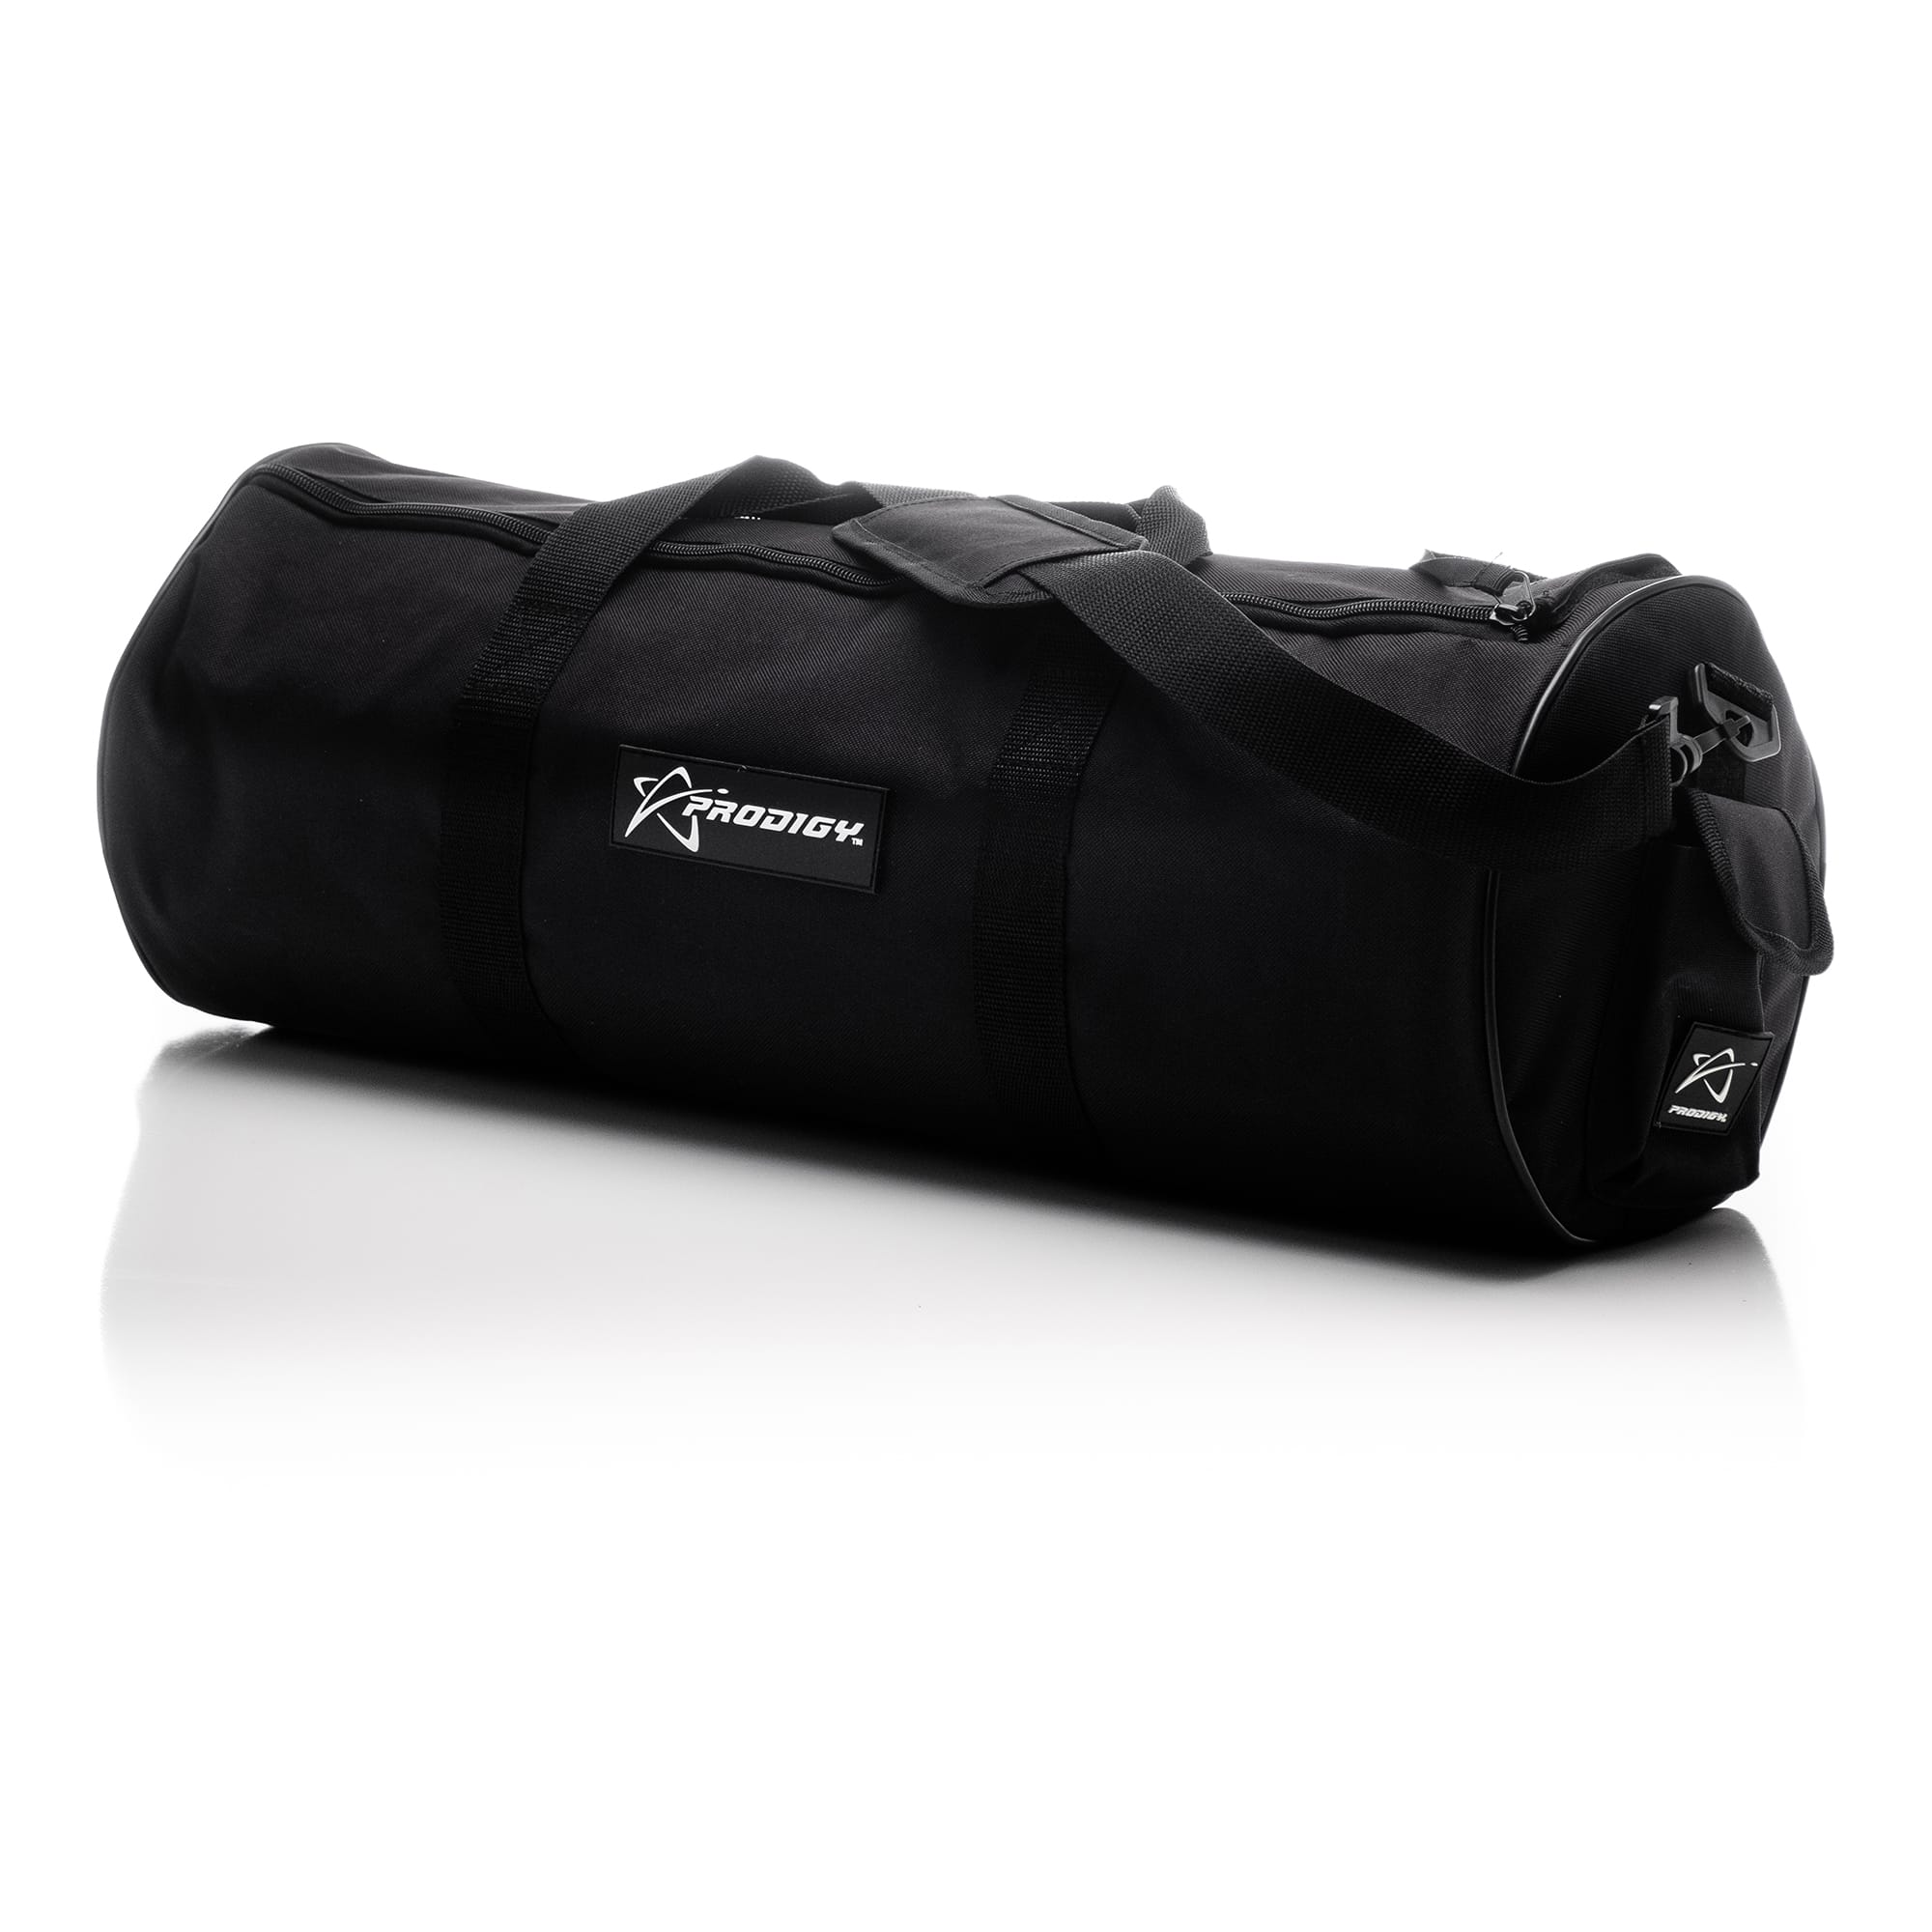 practice-bag-v2-black-front-closed_opt.jpg